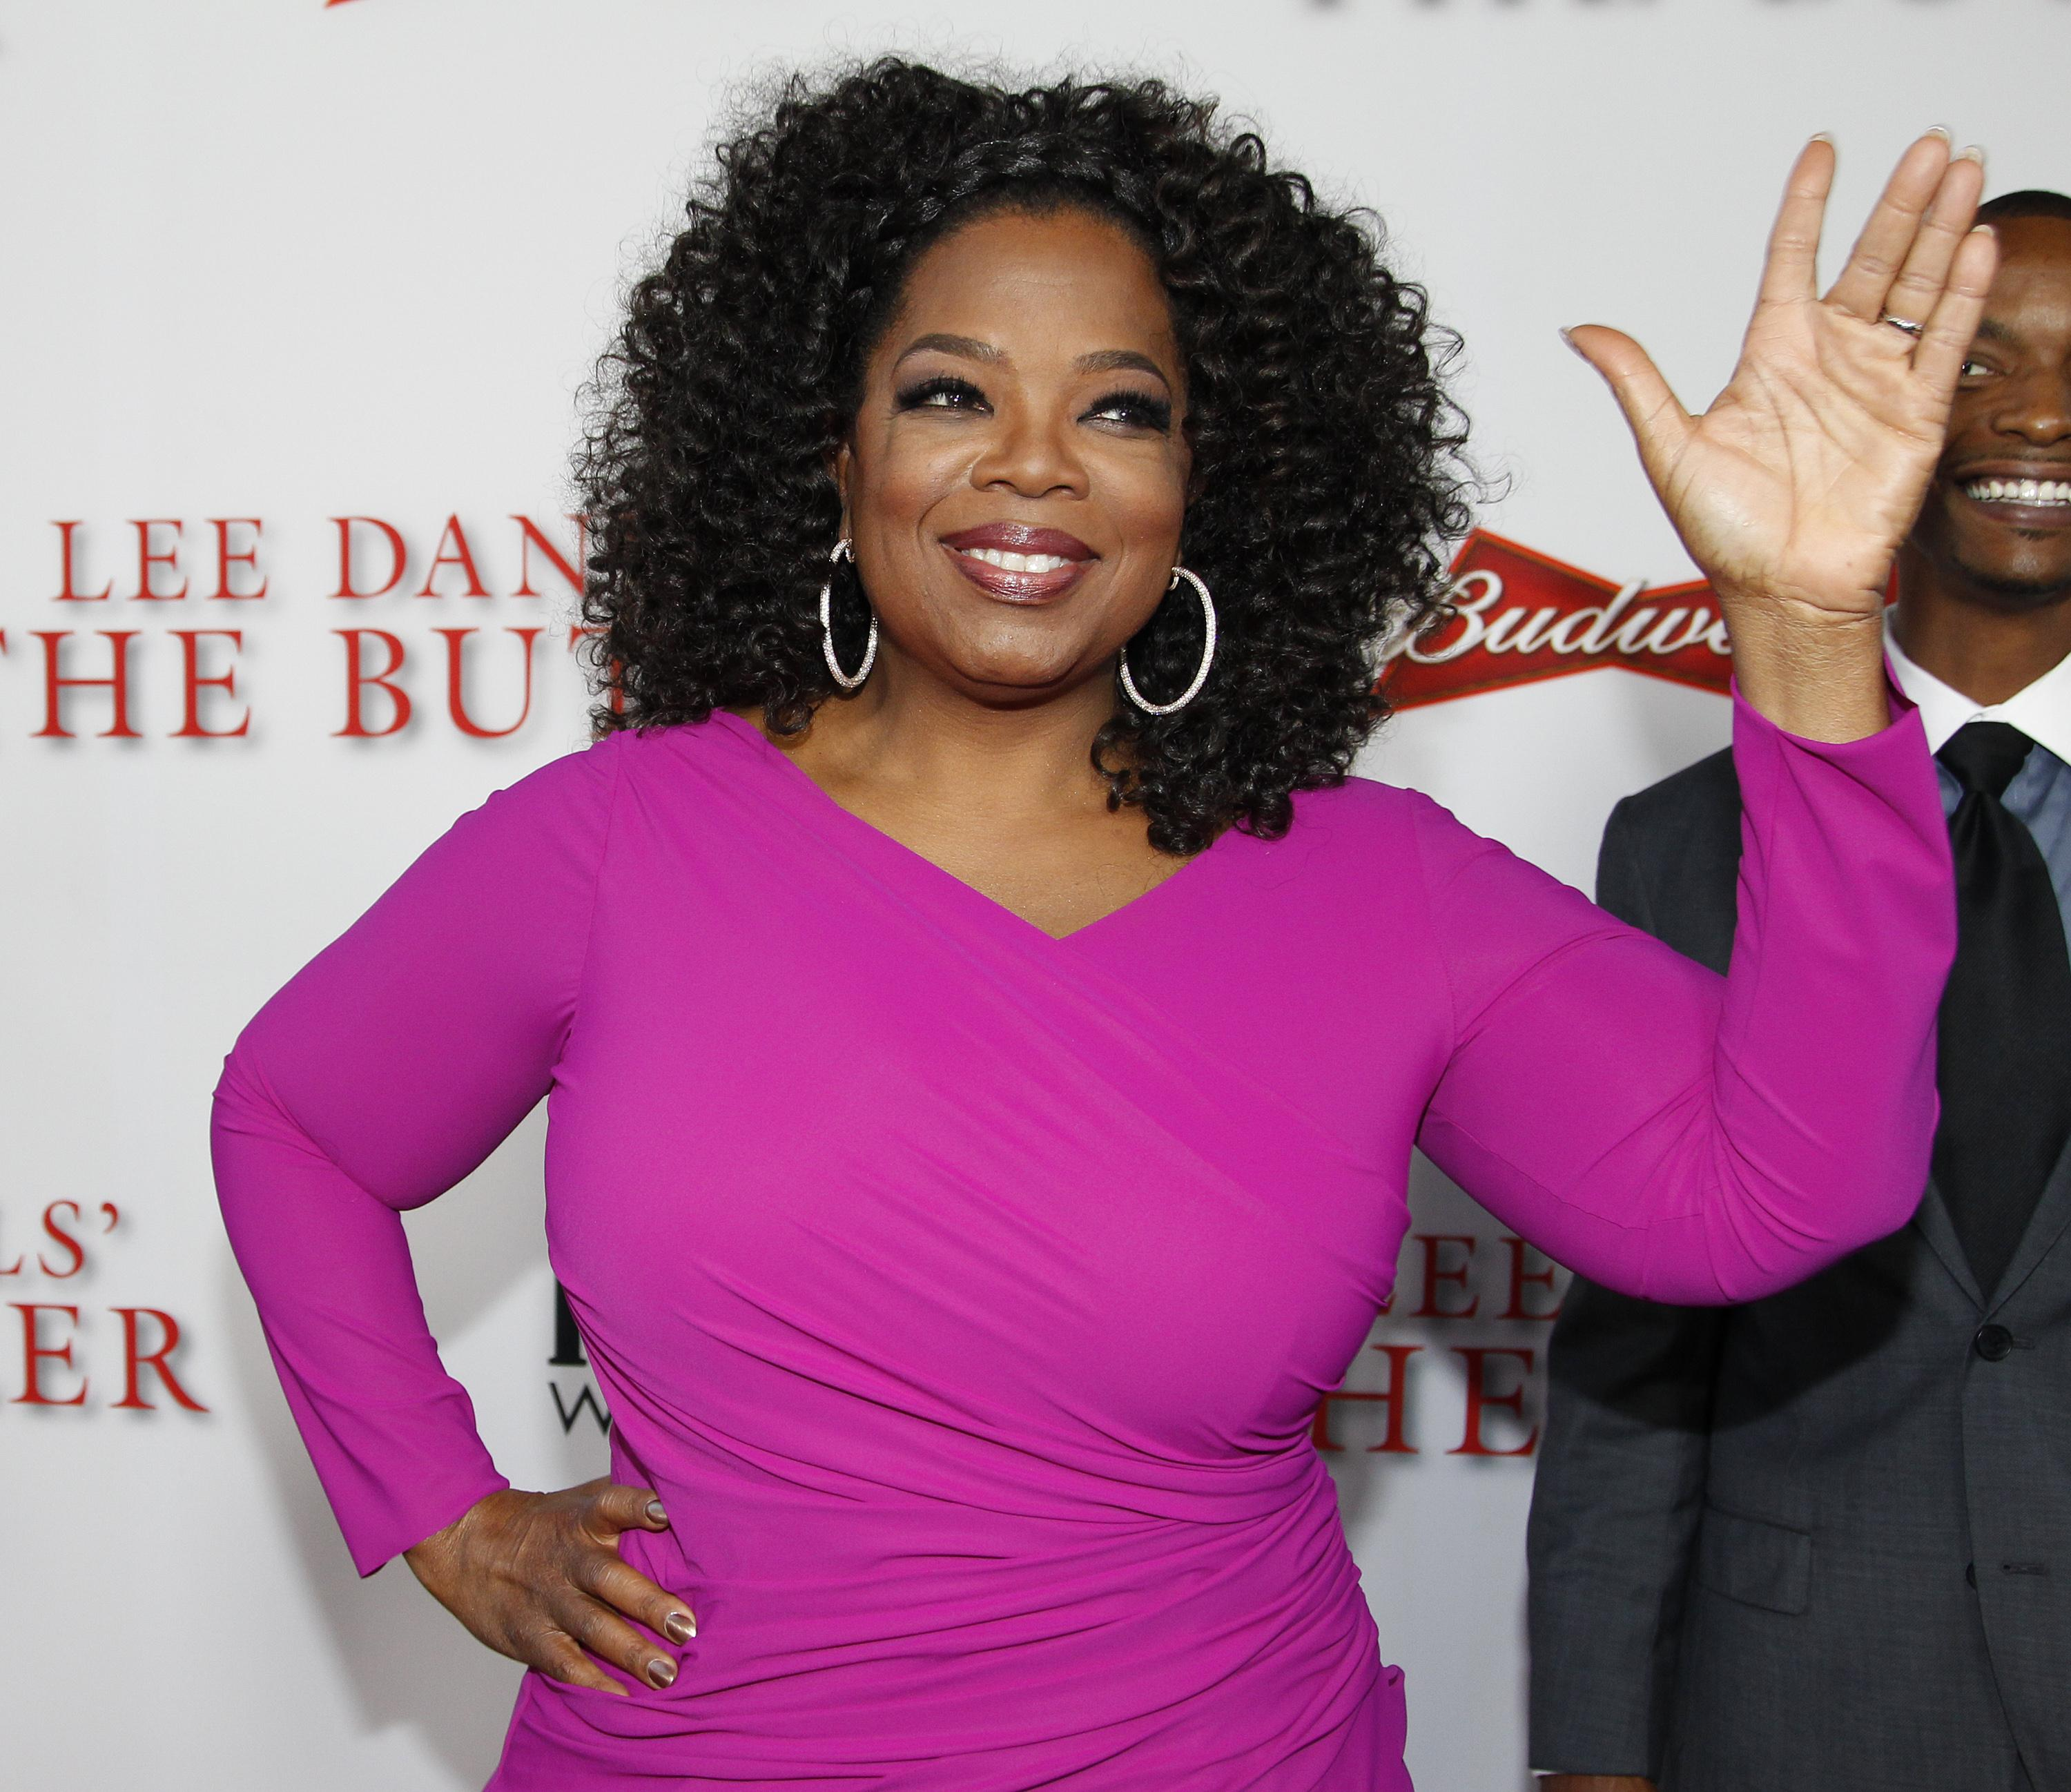 Did Oprah Winfrey Lie?